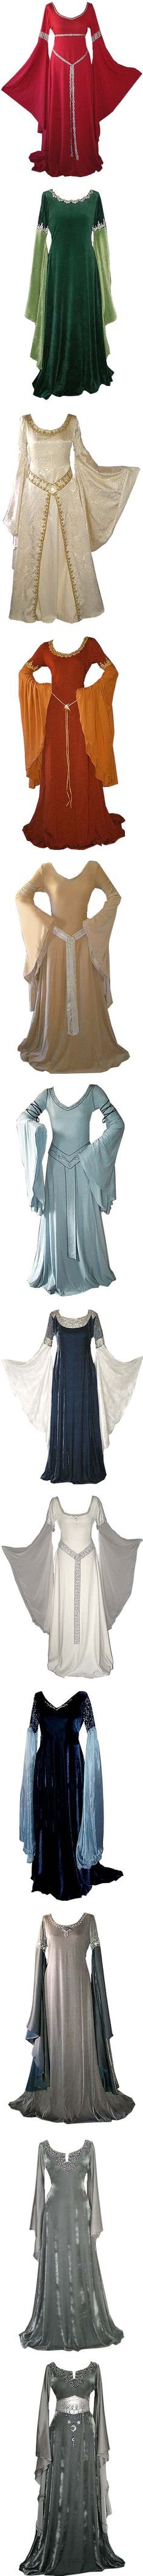 Medieval Gowns I by savagedamsel on Polyvore featuring dresses, medieval, gowns, medieval dresses, costumes, costume, long dresses, fantasy, blue gown and blue dress